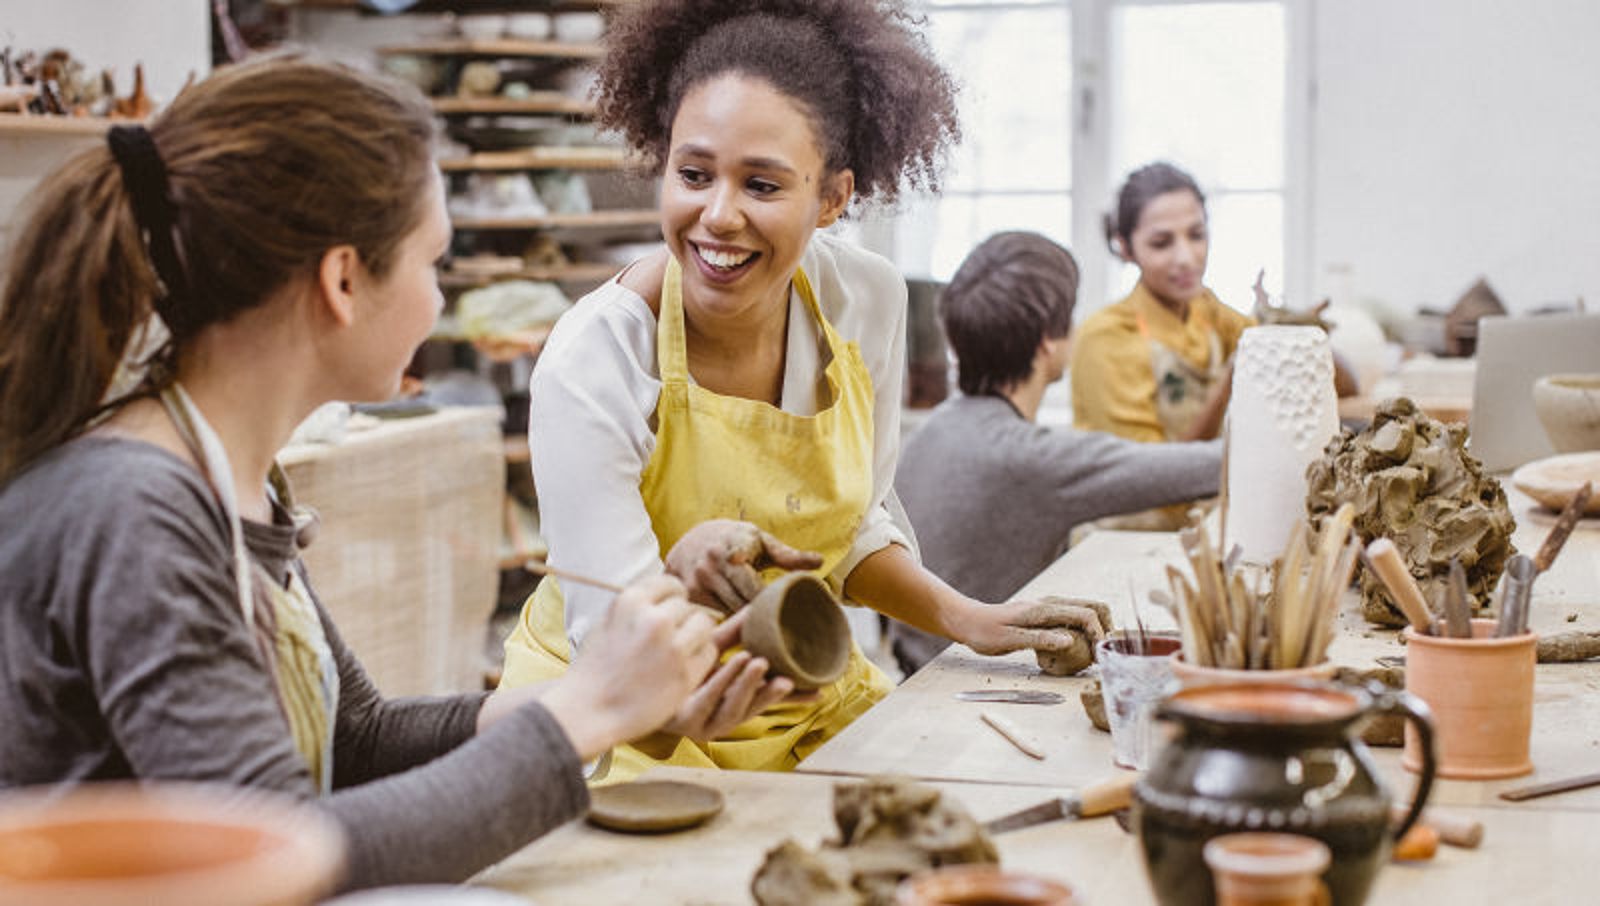 Report: Rest Of Pottery Class Knows Each Other From Previous Pottery Class